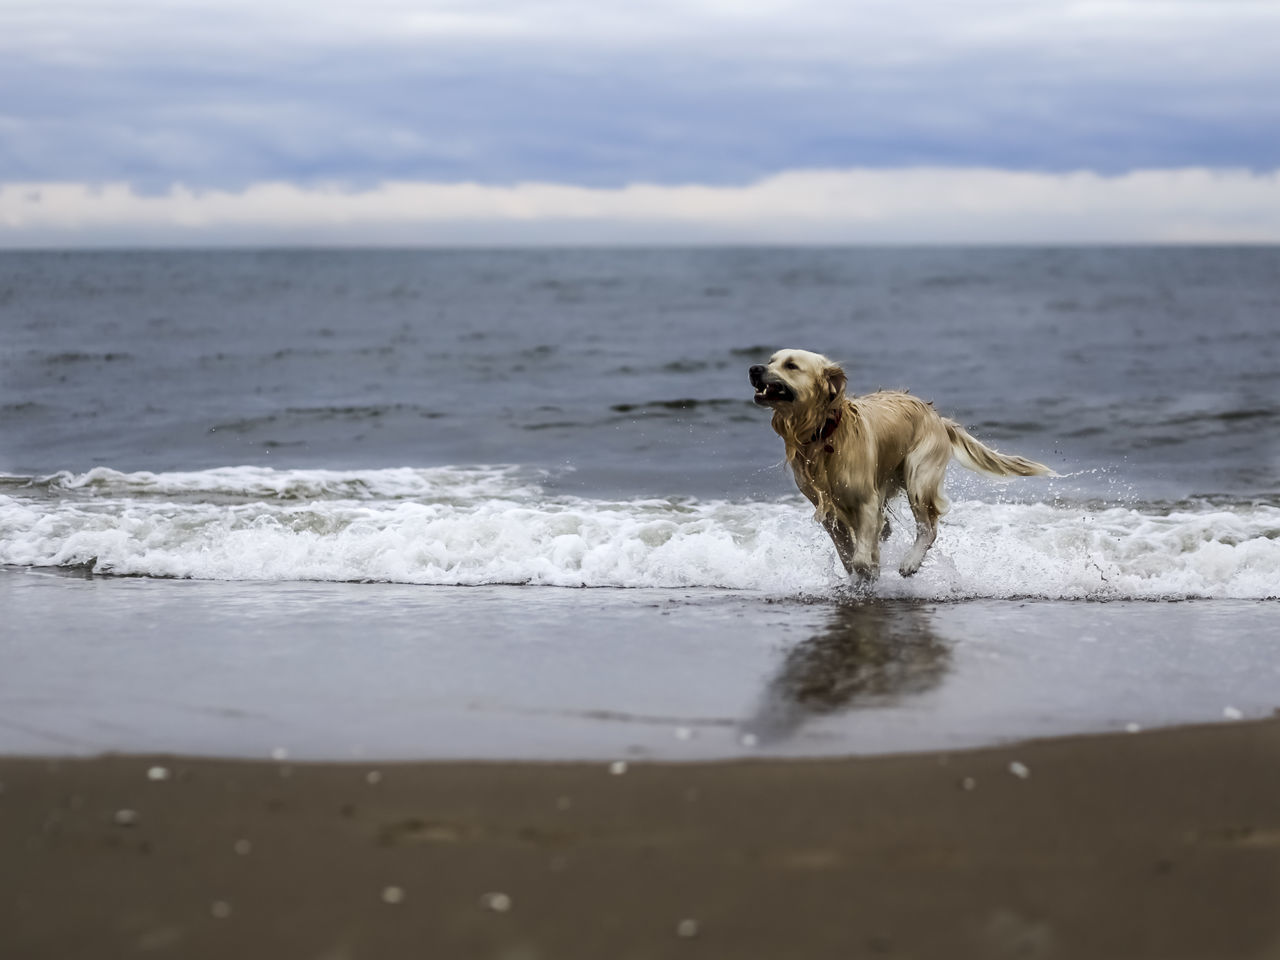 dog, one animal, water, pets, domestic animals, nature, mammal, animal themes, outdoors, sea, day, beach, no people, sky, beauty in nature